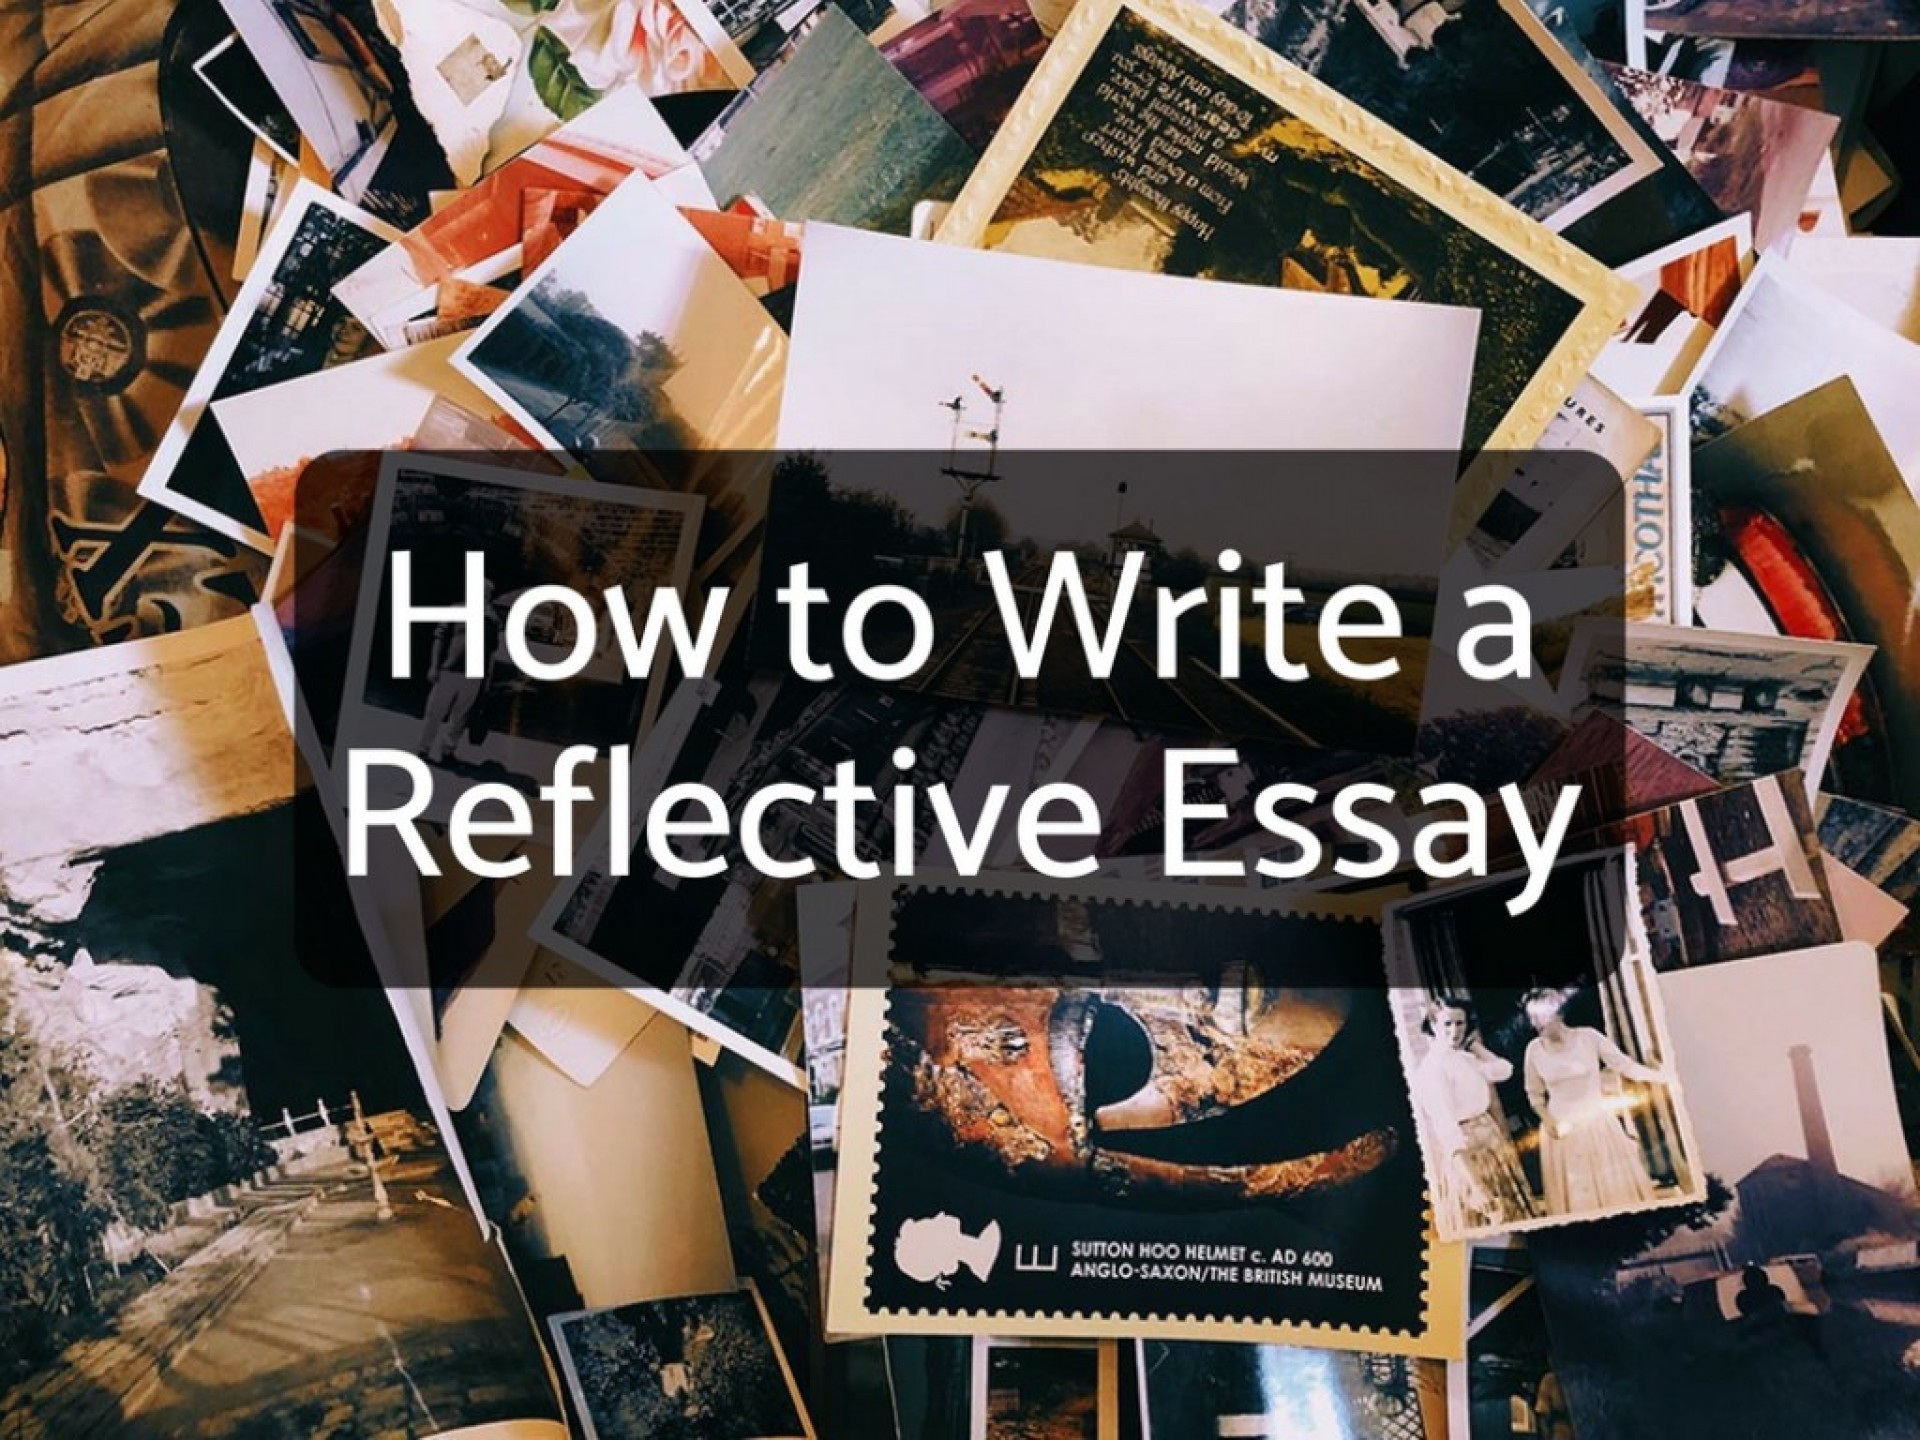 020 14169915 F1024 How To Write Reflection Essay Awesome A Reflective Introduction Example On An Article Course 1920